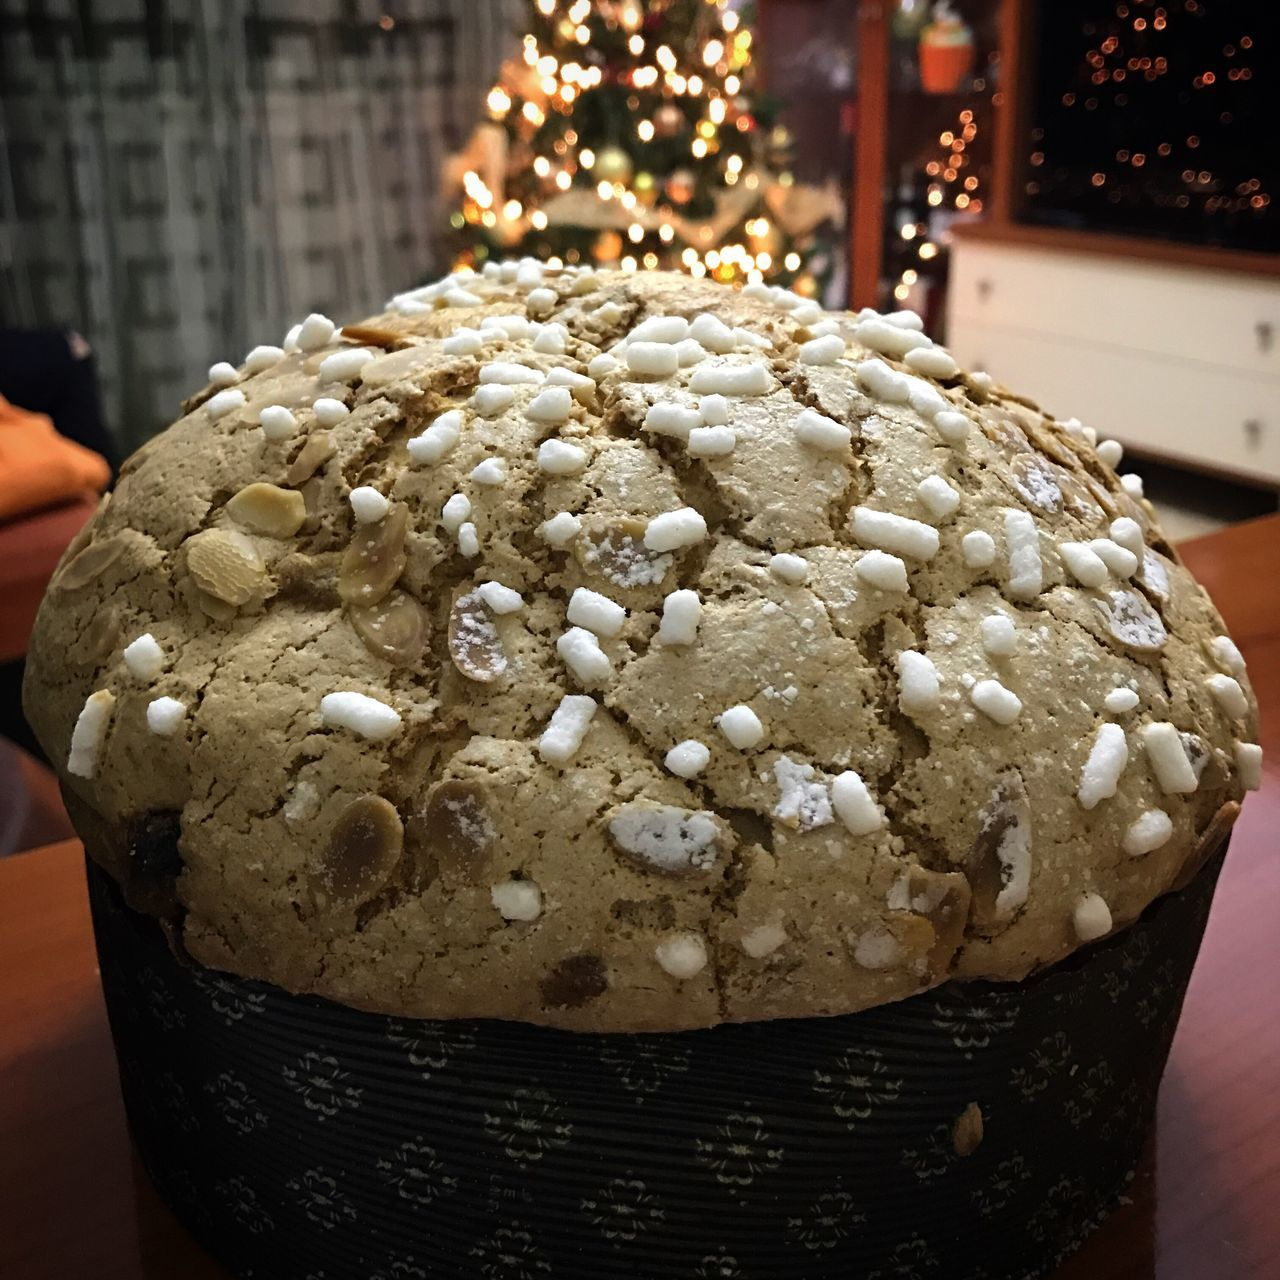 Panettone artigianale Sweet Food Food Food And Drink Christmas Close-up Illuminated Ready-to-eat Christmas Decoration Napoli Quarto Freshness No People Indoors  Day